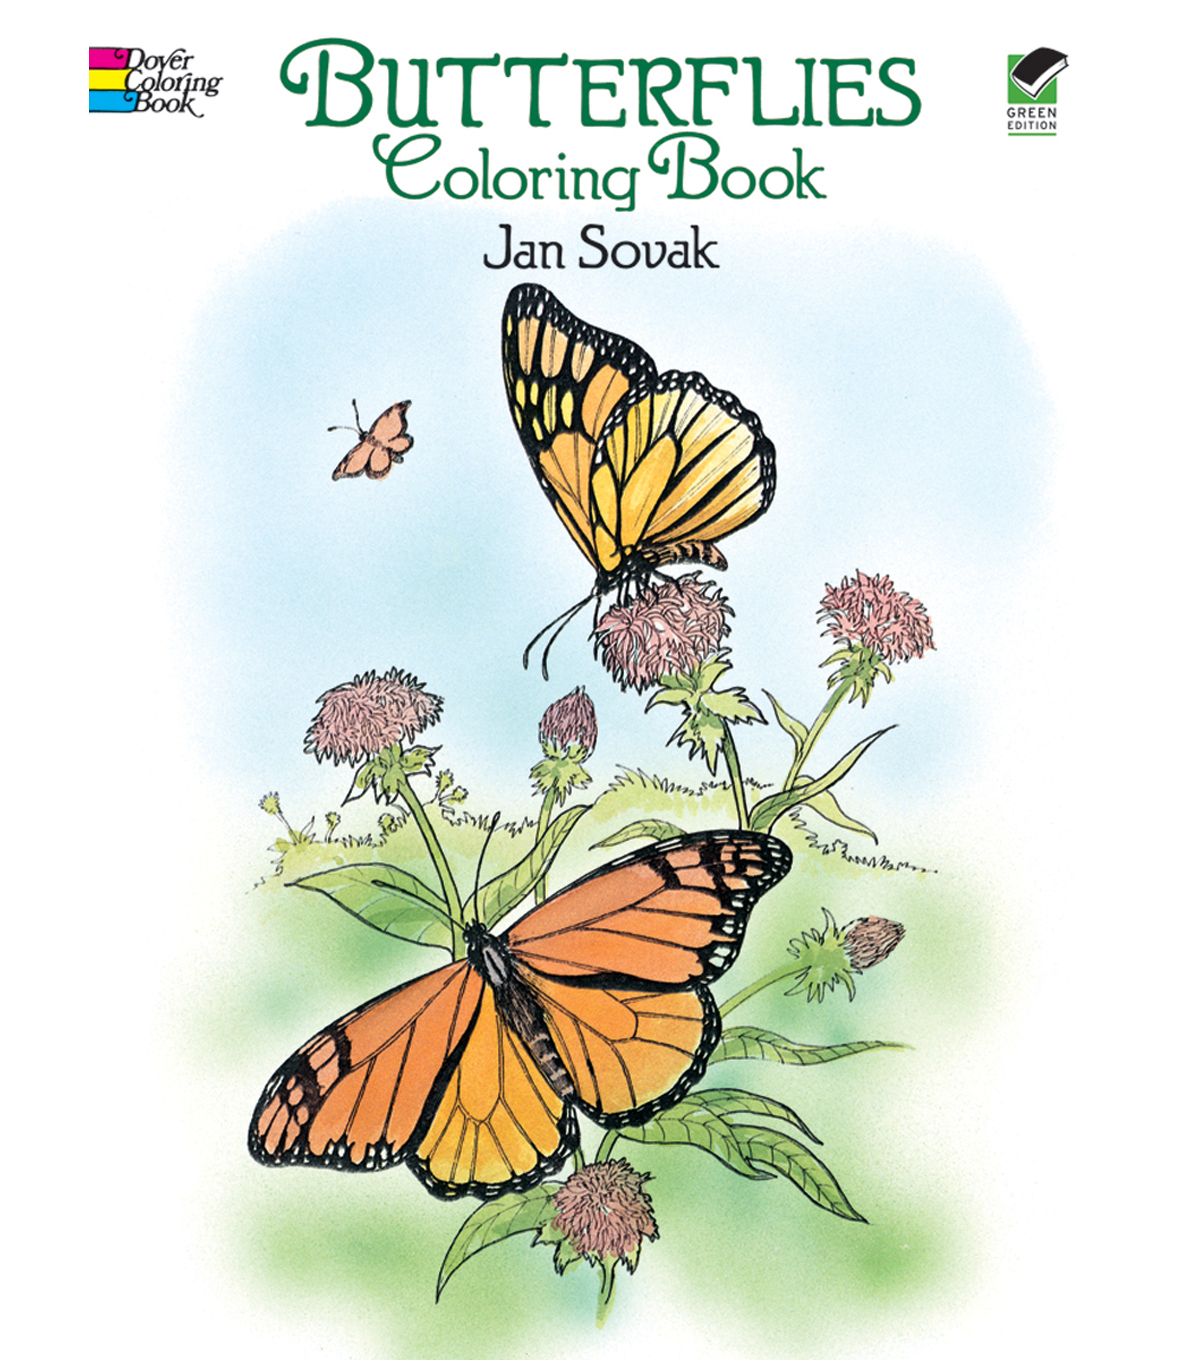 Butterfly Coloring Book - Adult Coloring Books | JOANN